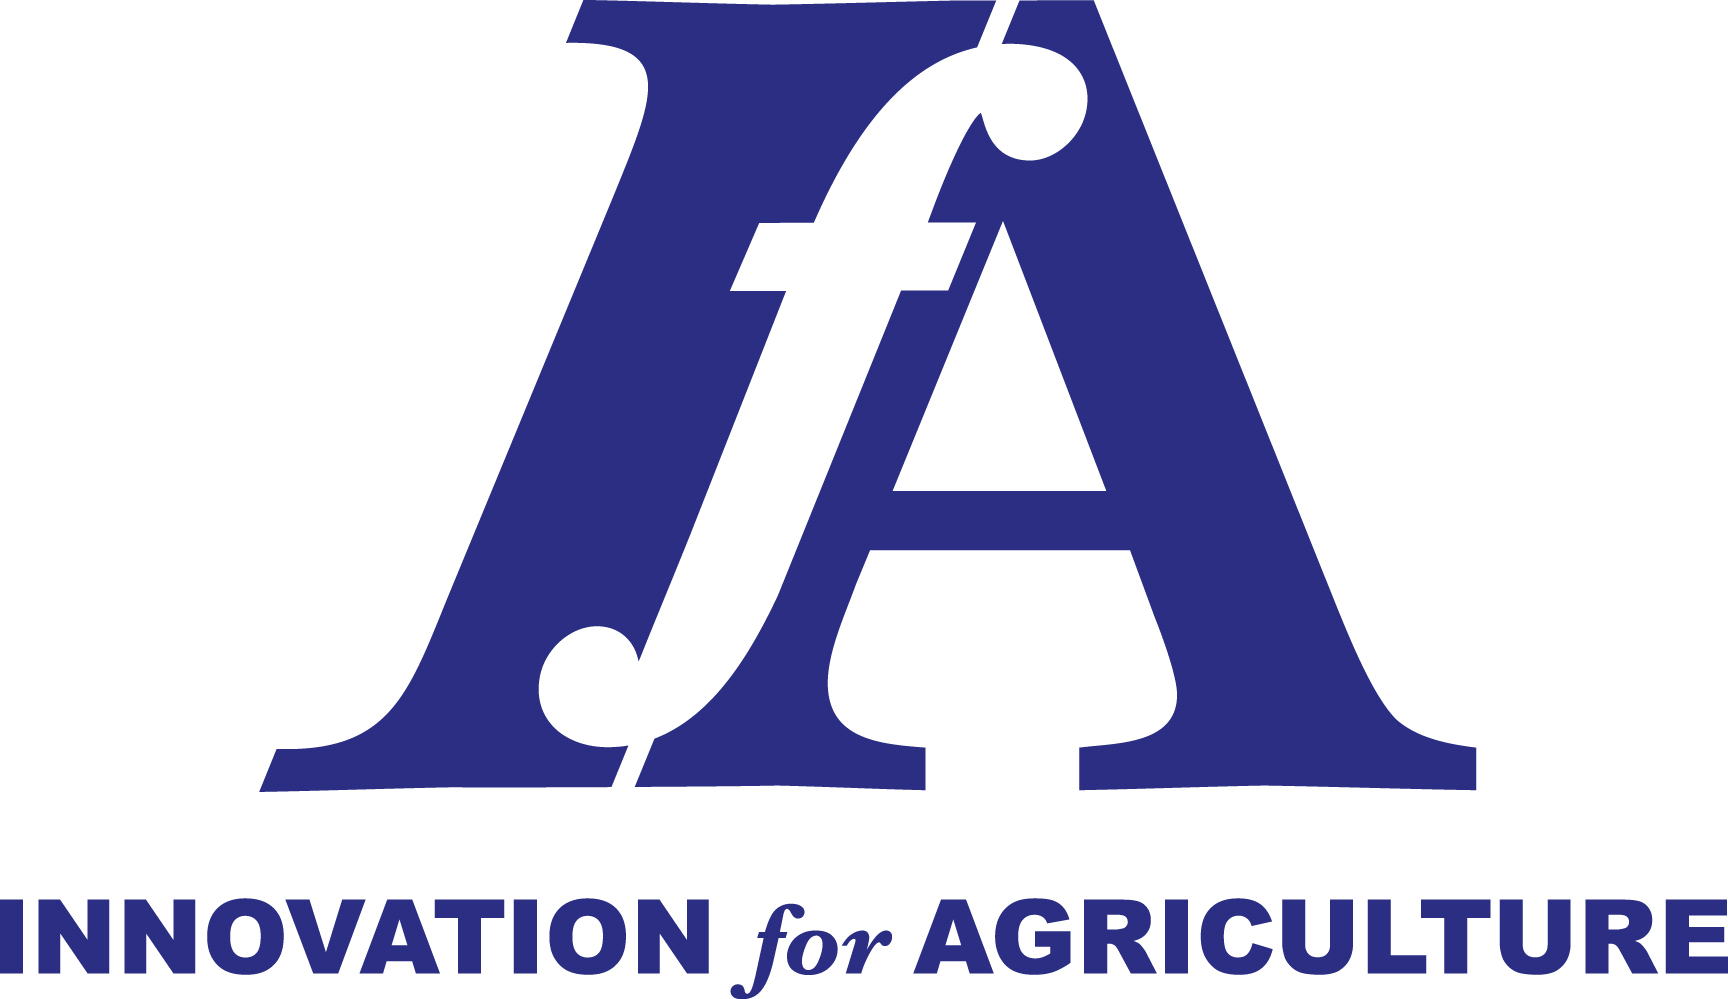 innovations for agriculture Logo RGB.jpg